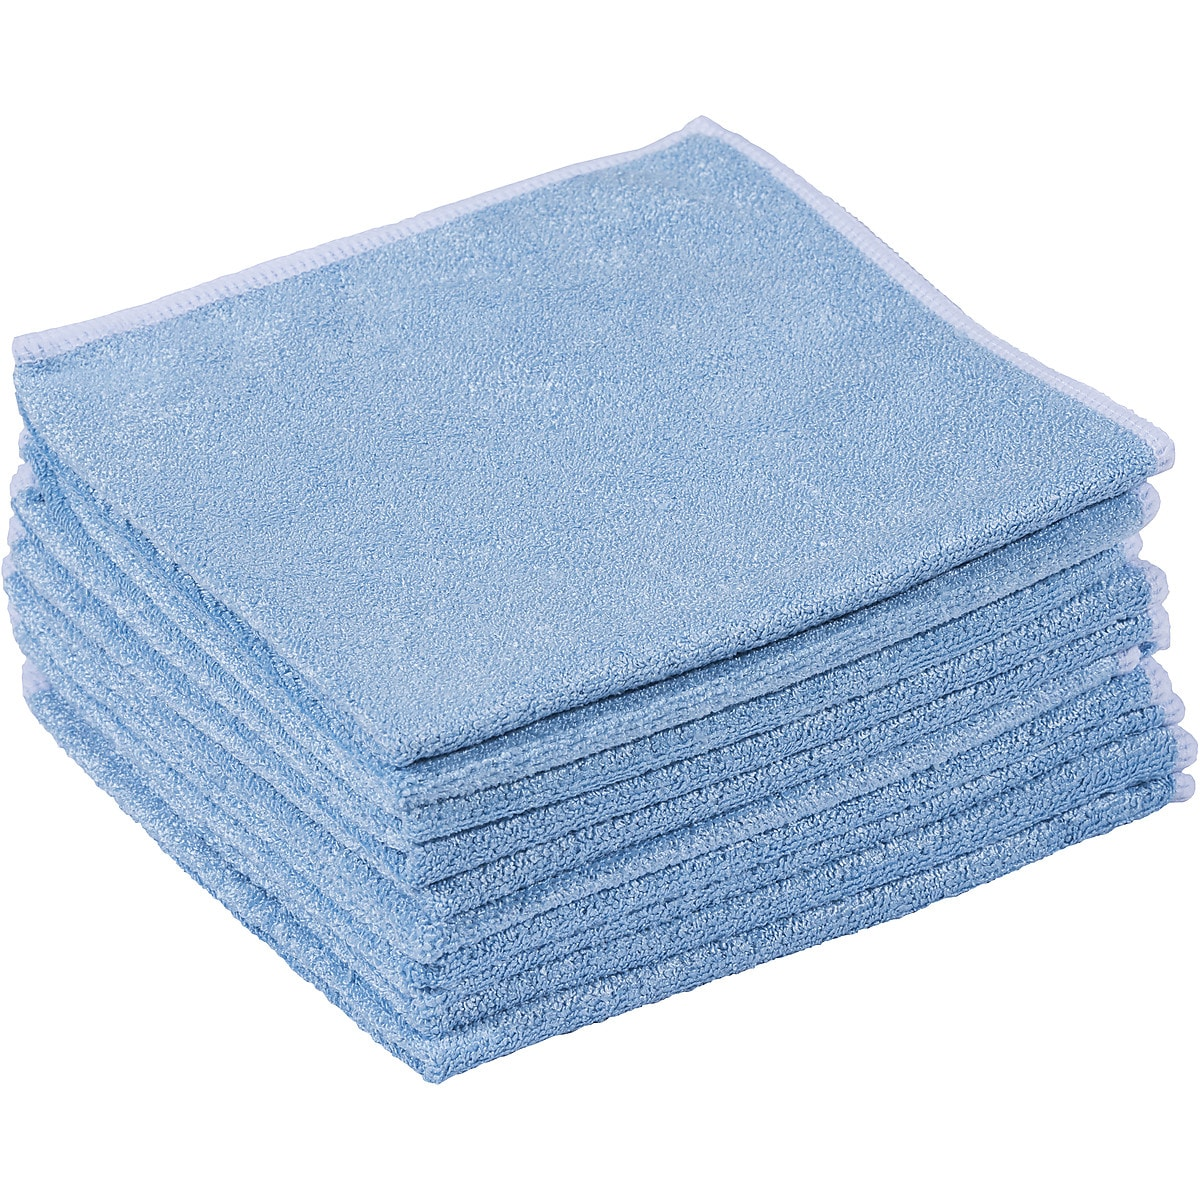 Städduk Smart Microfiber, 10-pack